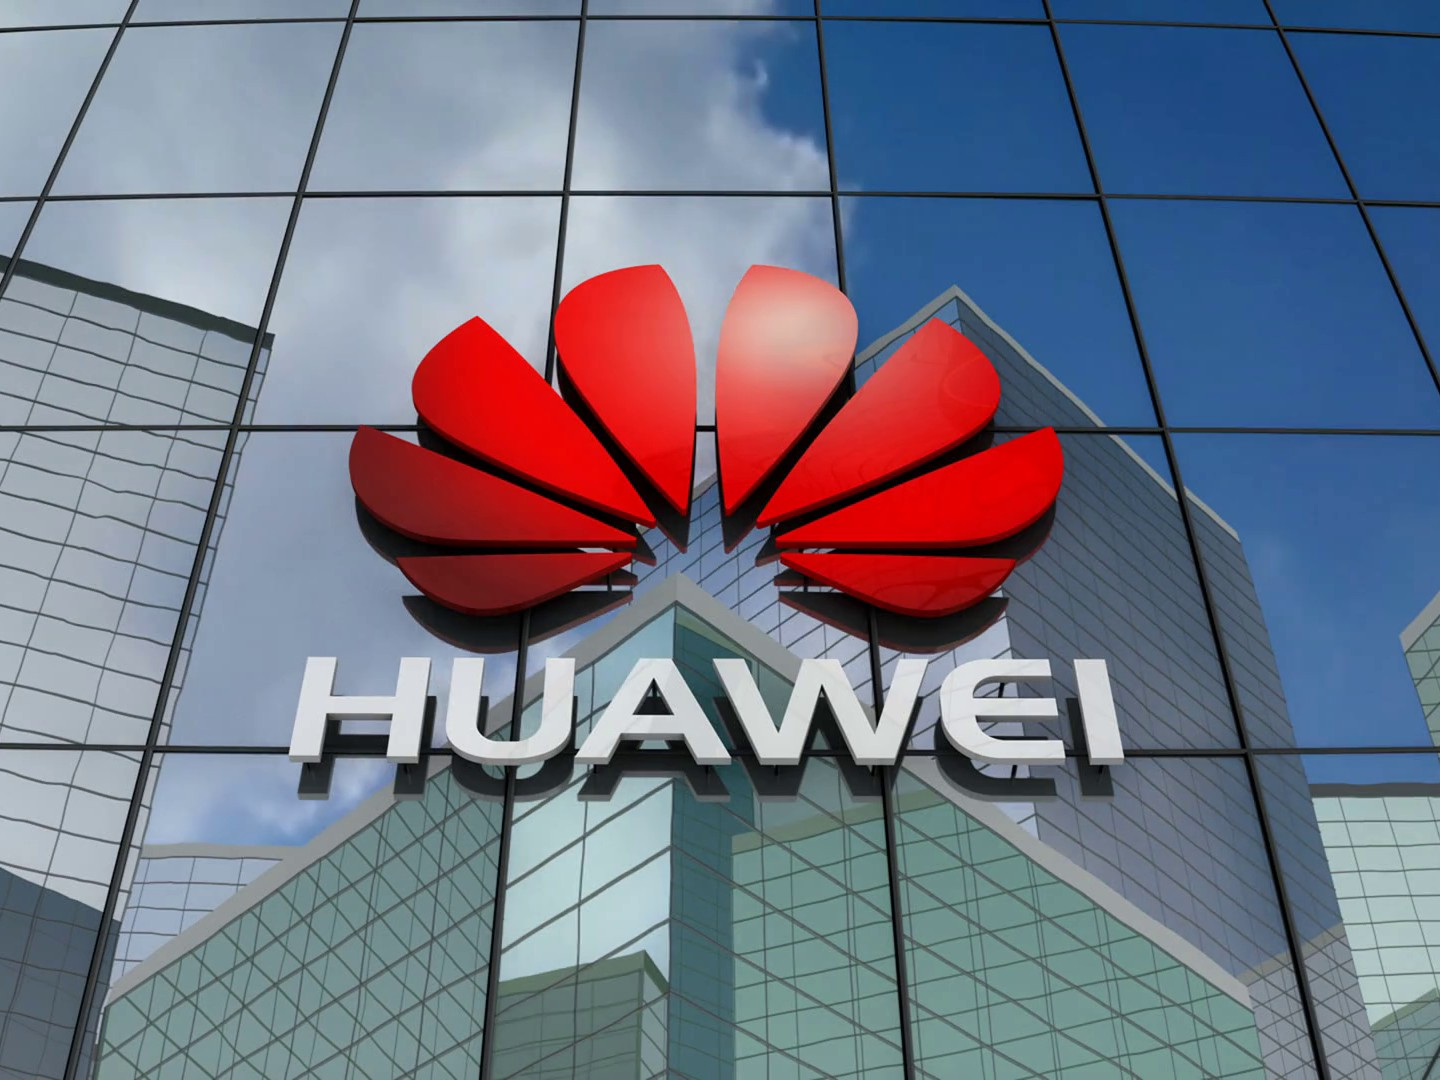 Qualcomm pursues to sell 5G chips to Huawei